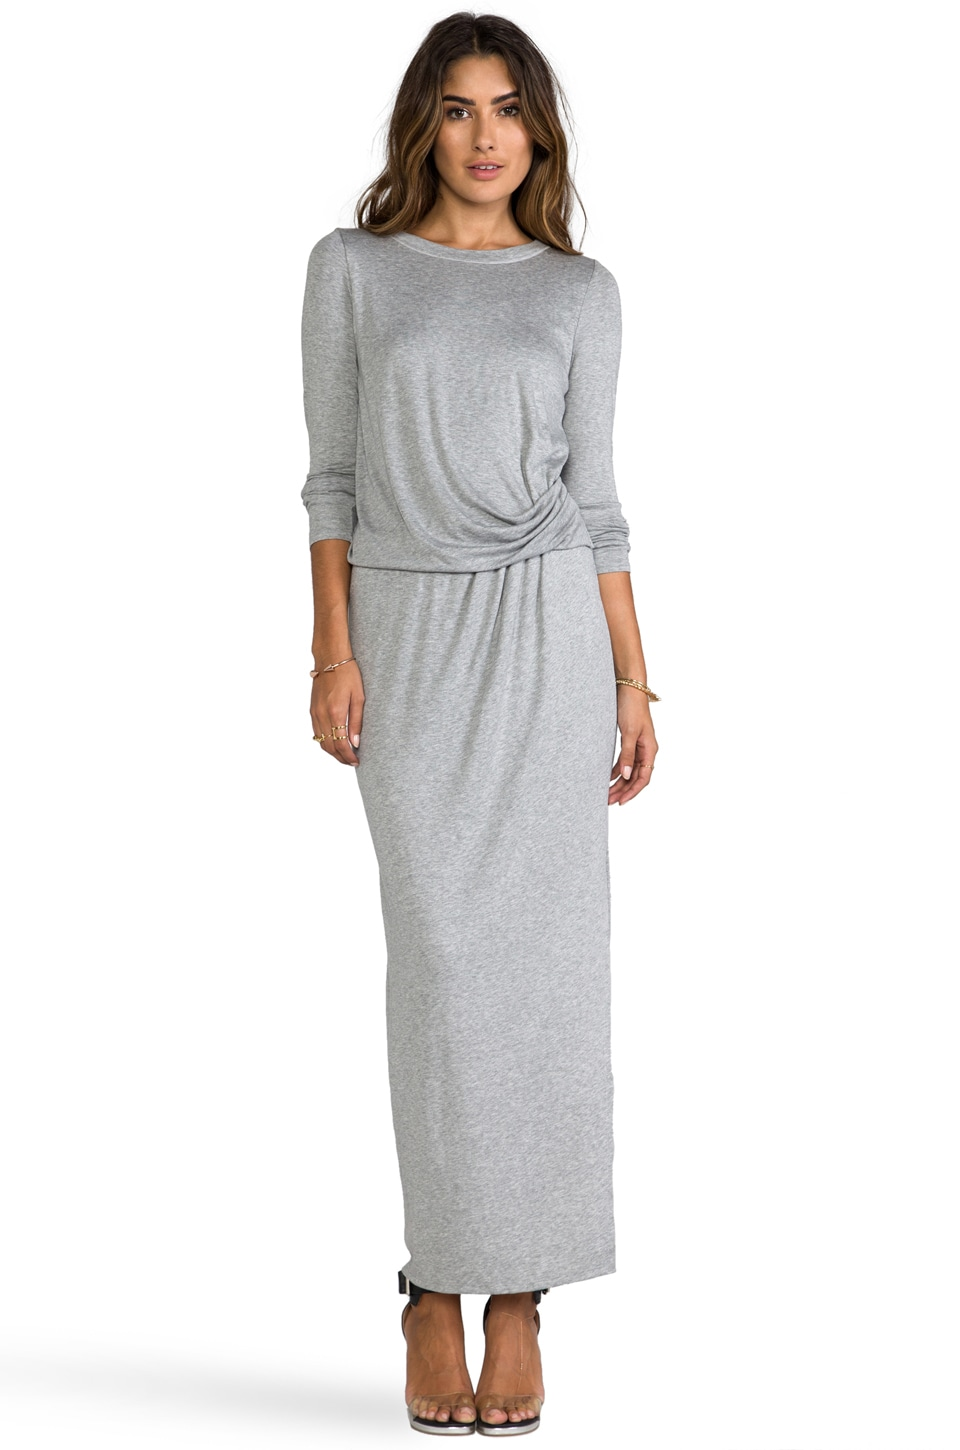 Heather Tuck Maxi Dress in Light Heather Grey